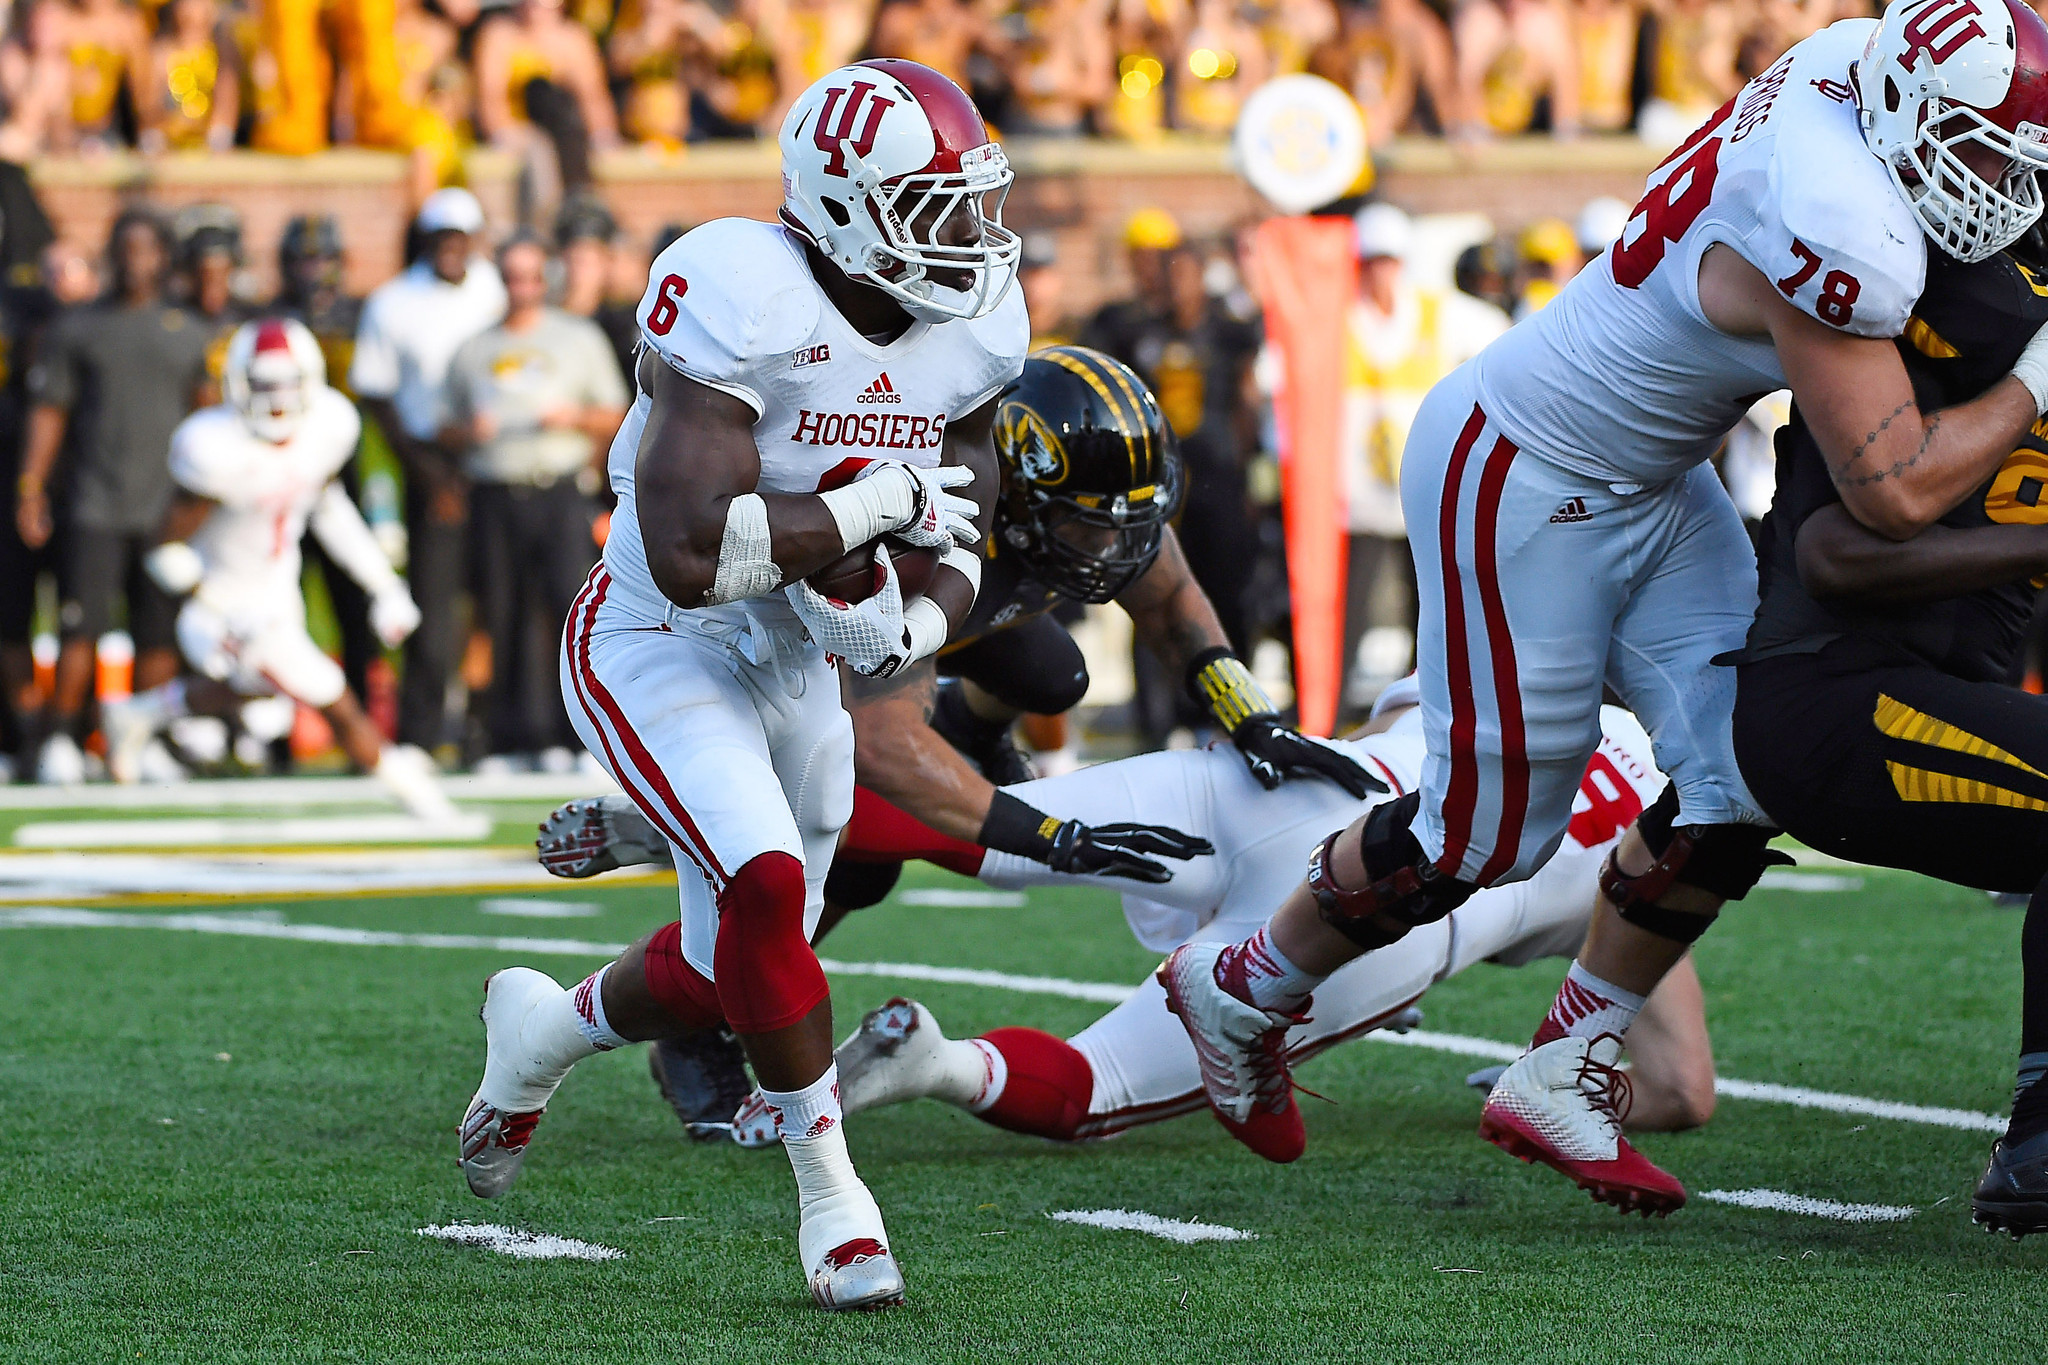 Indiana running back Tevin Coleman to visit Ravens Panthers